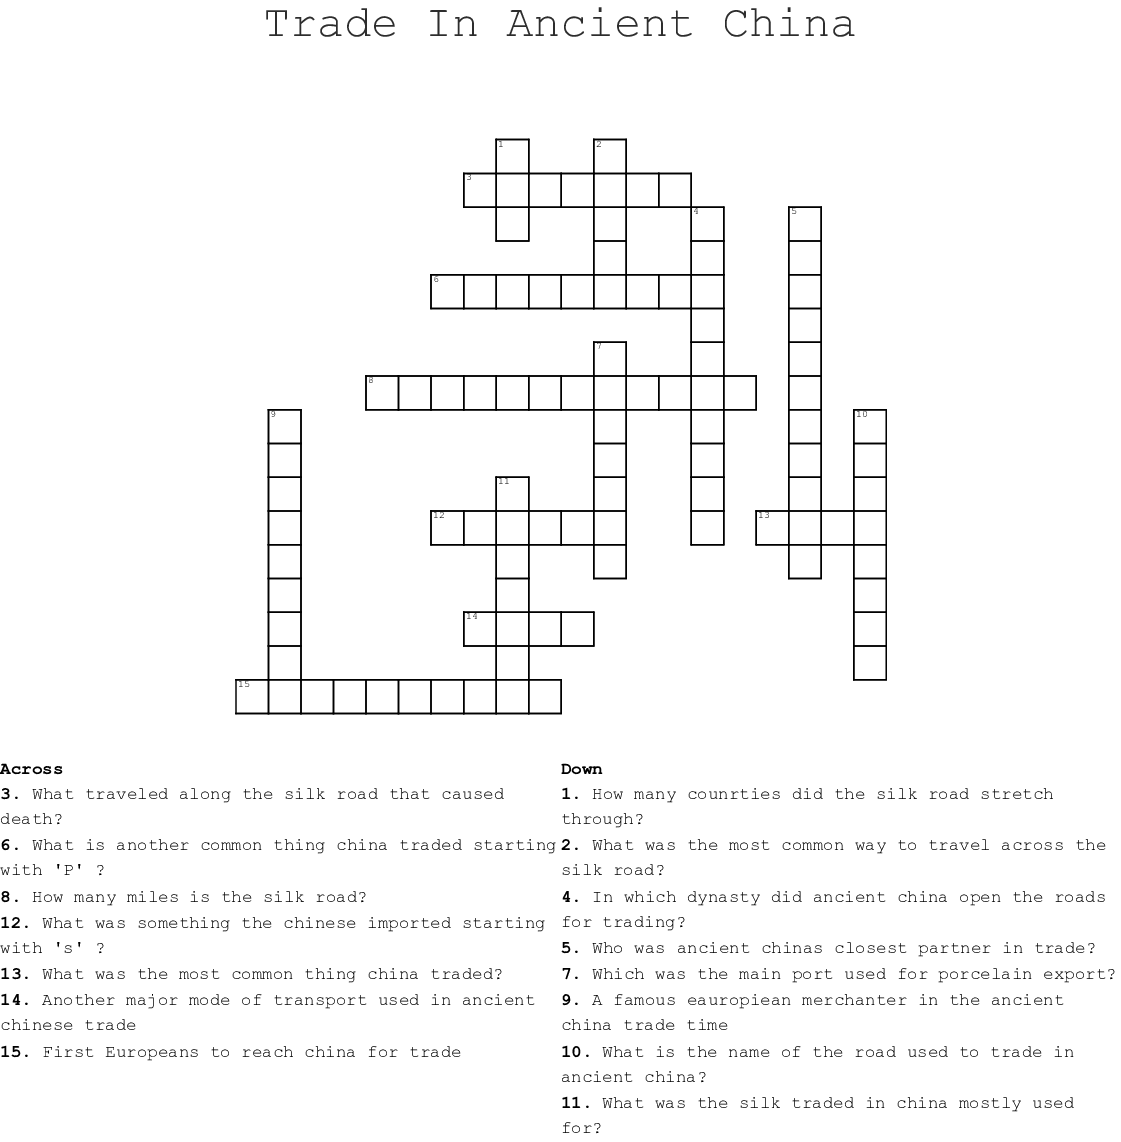 Trade In Ancient China Crossword